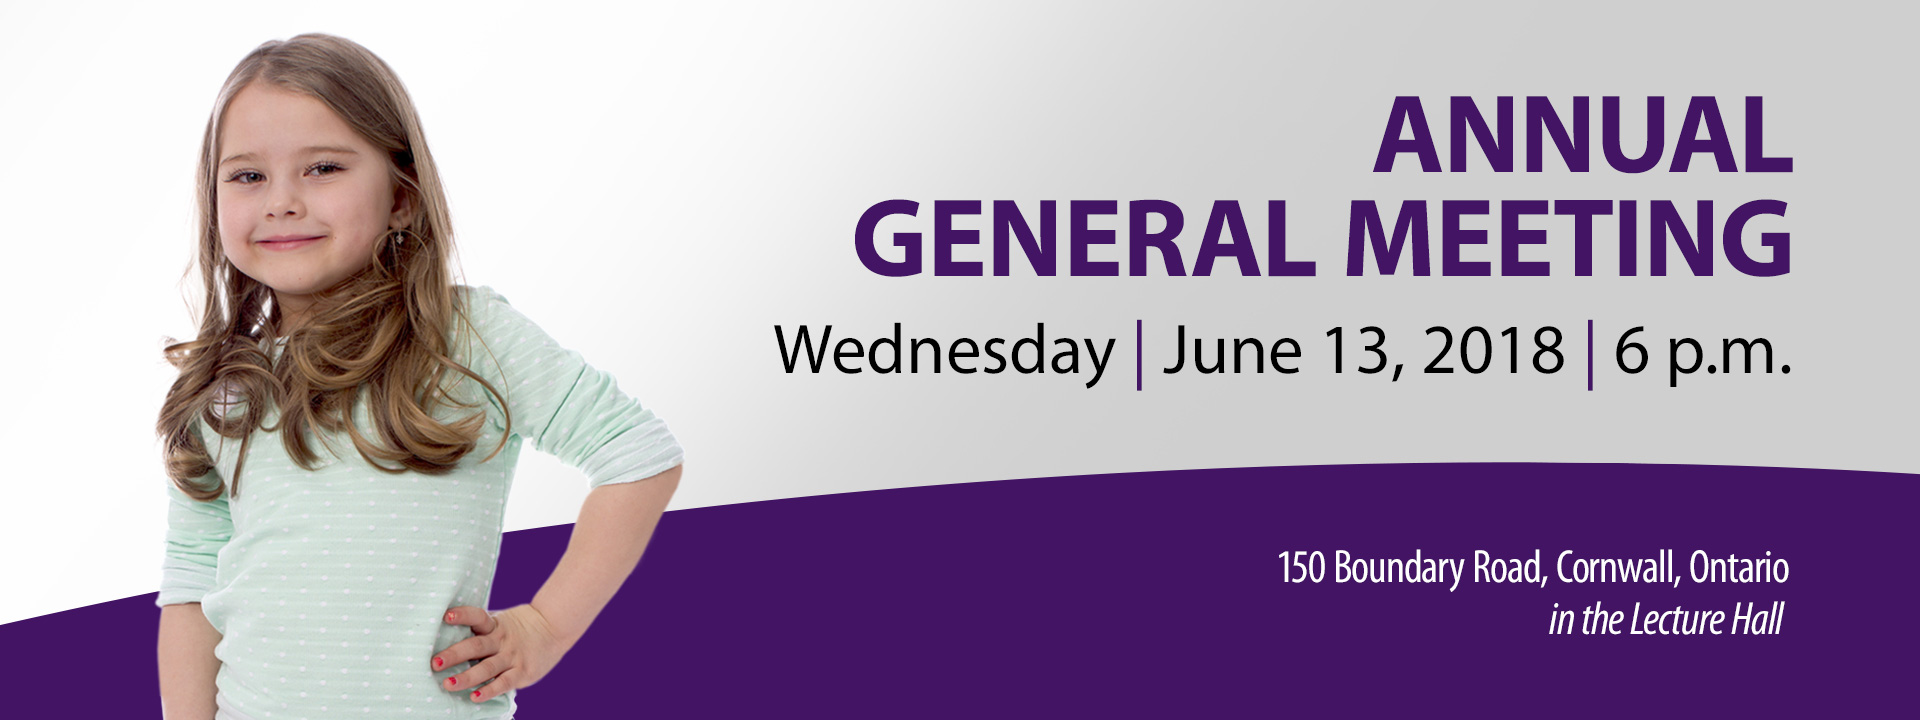 Annual General meeting - Wednesday, June 13, 2018 at 6 p.m.  Where: 150 Boundary Road, Cornwall, Ontario in the Lecture Hall